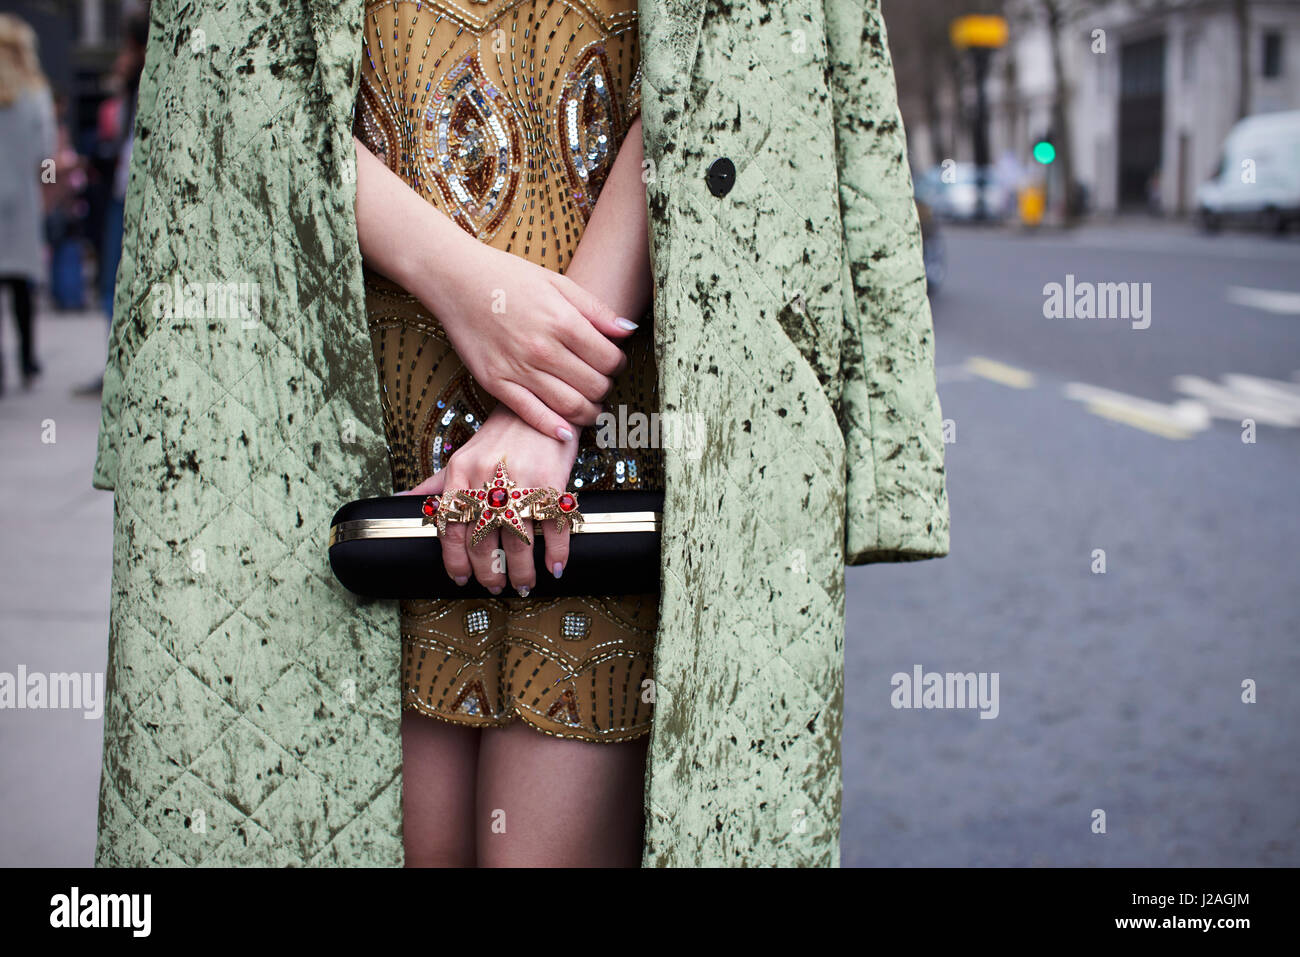 LONDON - FEBRUARY, 2017: Mid section of fashionable woman wearing green crushed velvet coat over a minidress with - Stock Image